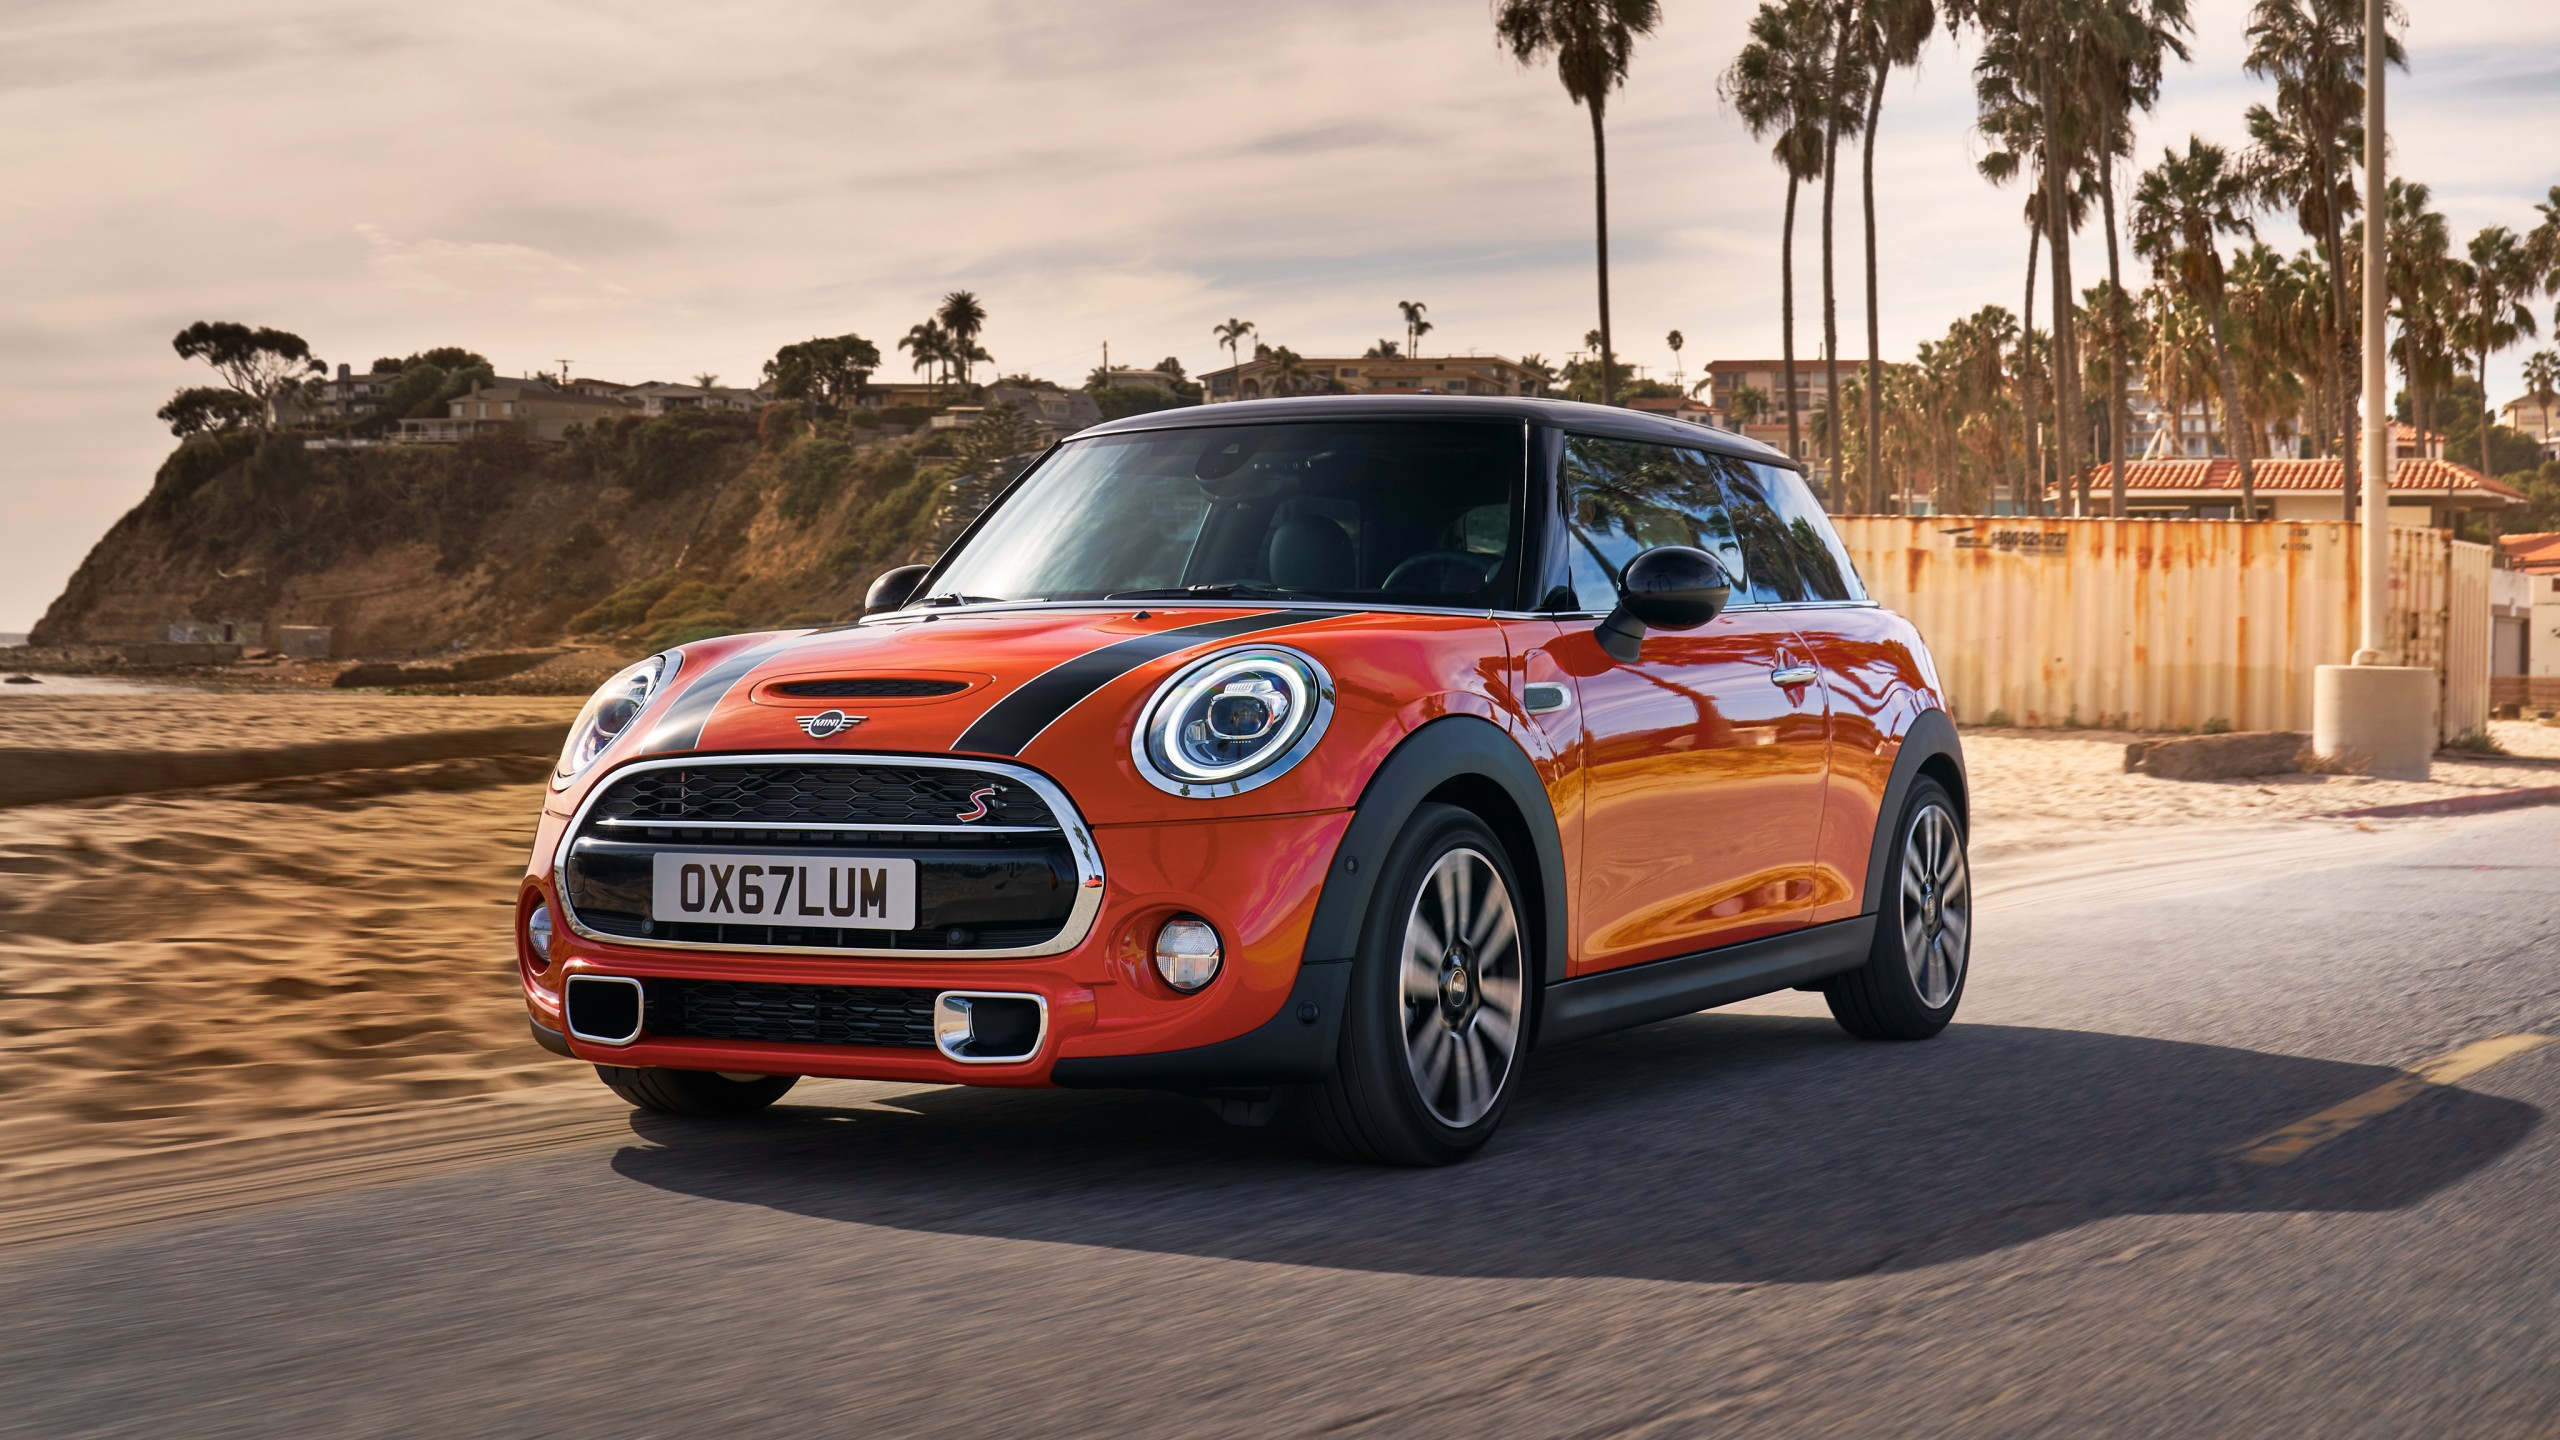 Mini Cooper S 2018 4k Wallpaper Hd Car Wallpapers Id 9376